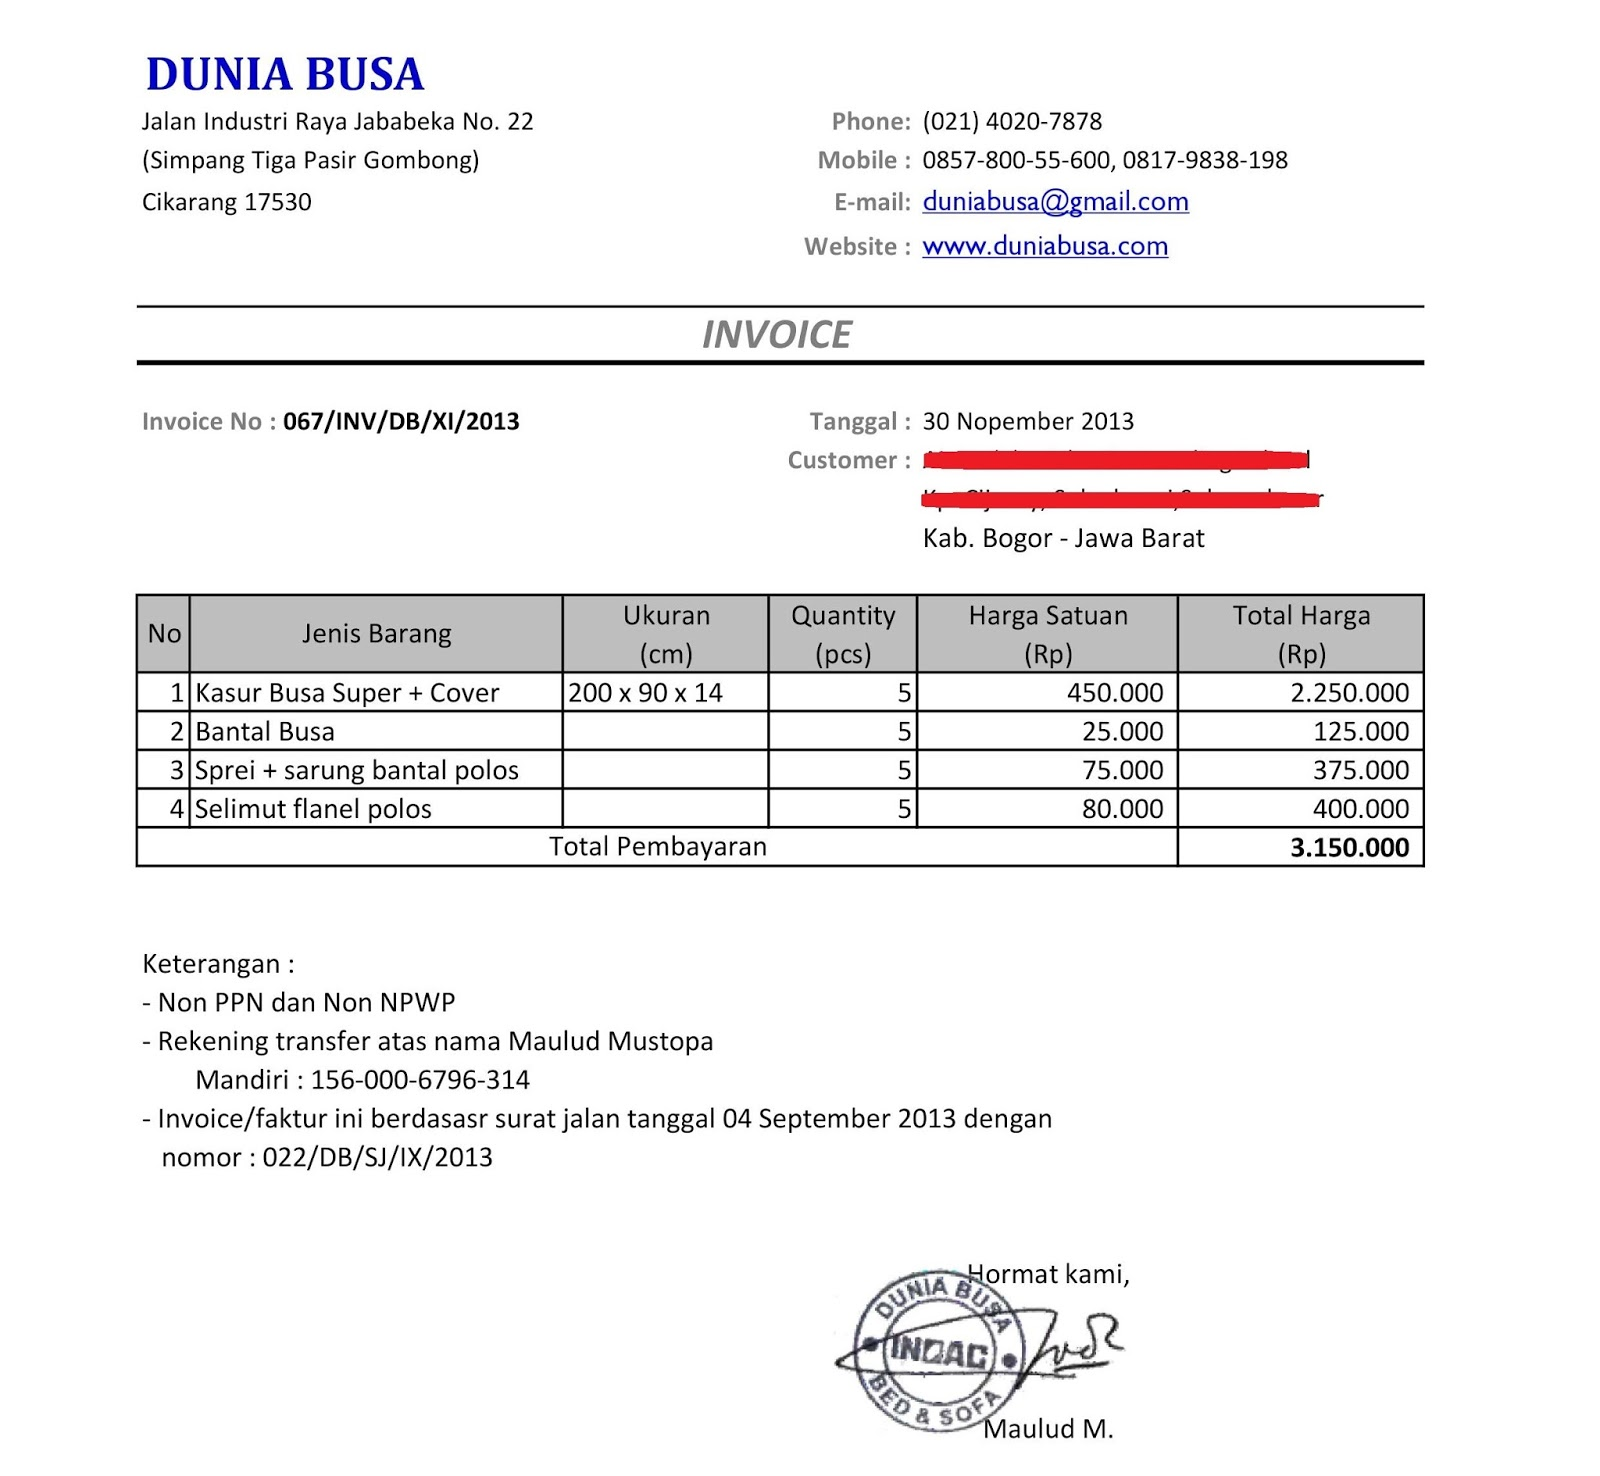 Centralasianshepherdus  Scenic Free Invoice Online  Create Invoice Online  Invoice Template  With Interesting Contoh Format Invoice Atau Surat Tagihan  Brankas Arsip  Free Invoice Online With Amusing Invoice Finance Definition Also Cash Invoice Sample In Addition Invoice Sale And How To Get Invoice Price Of Car As Well As Basic Invoice Software Additionally Project Invoice From Sklepco With Centralasianshepherdus  Interesting Free Invoice Online  Create Invoice Online  Invoice Template  With Amusing Contoh Format Invoice Atau Surat Tagihan  Brankas Arsip  Free Invoice Online And Scenic Invoice Finance Definition Also Cash Invoice Sample In Addition Invoice Sale From Sklepco